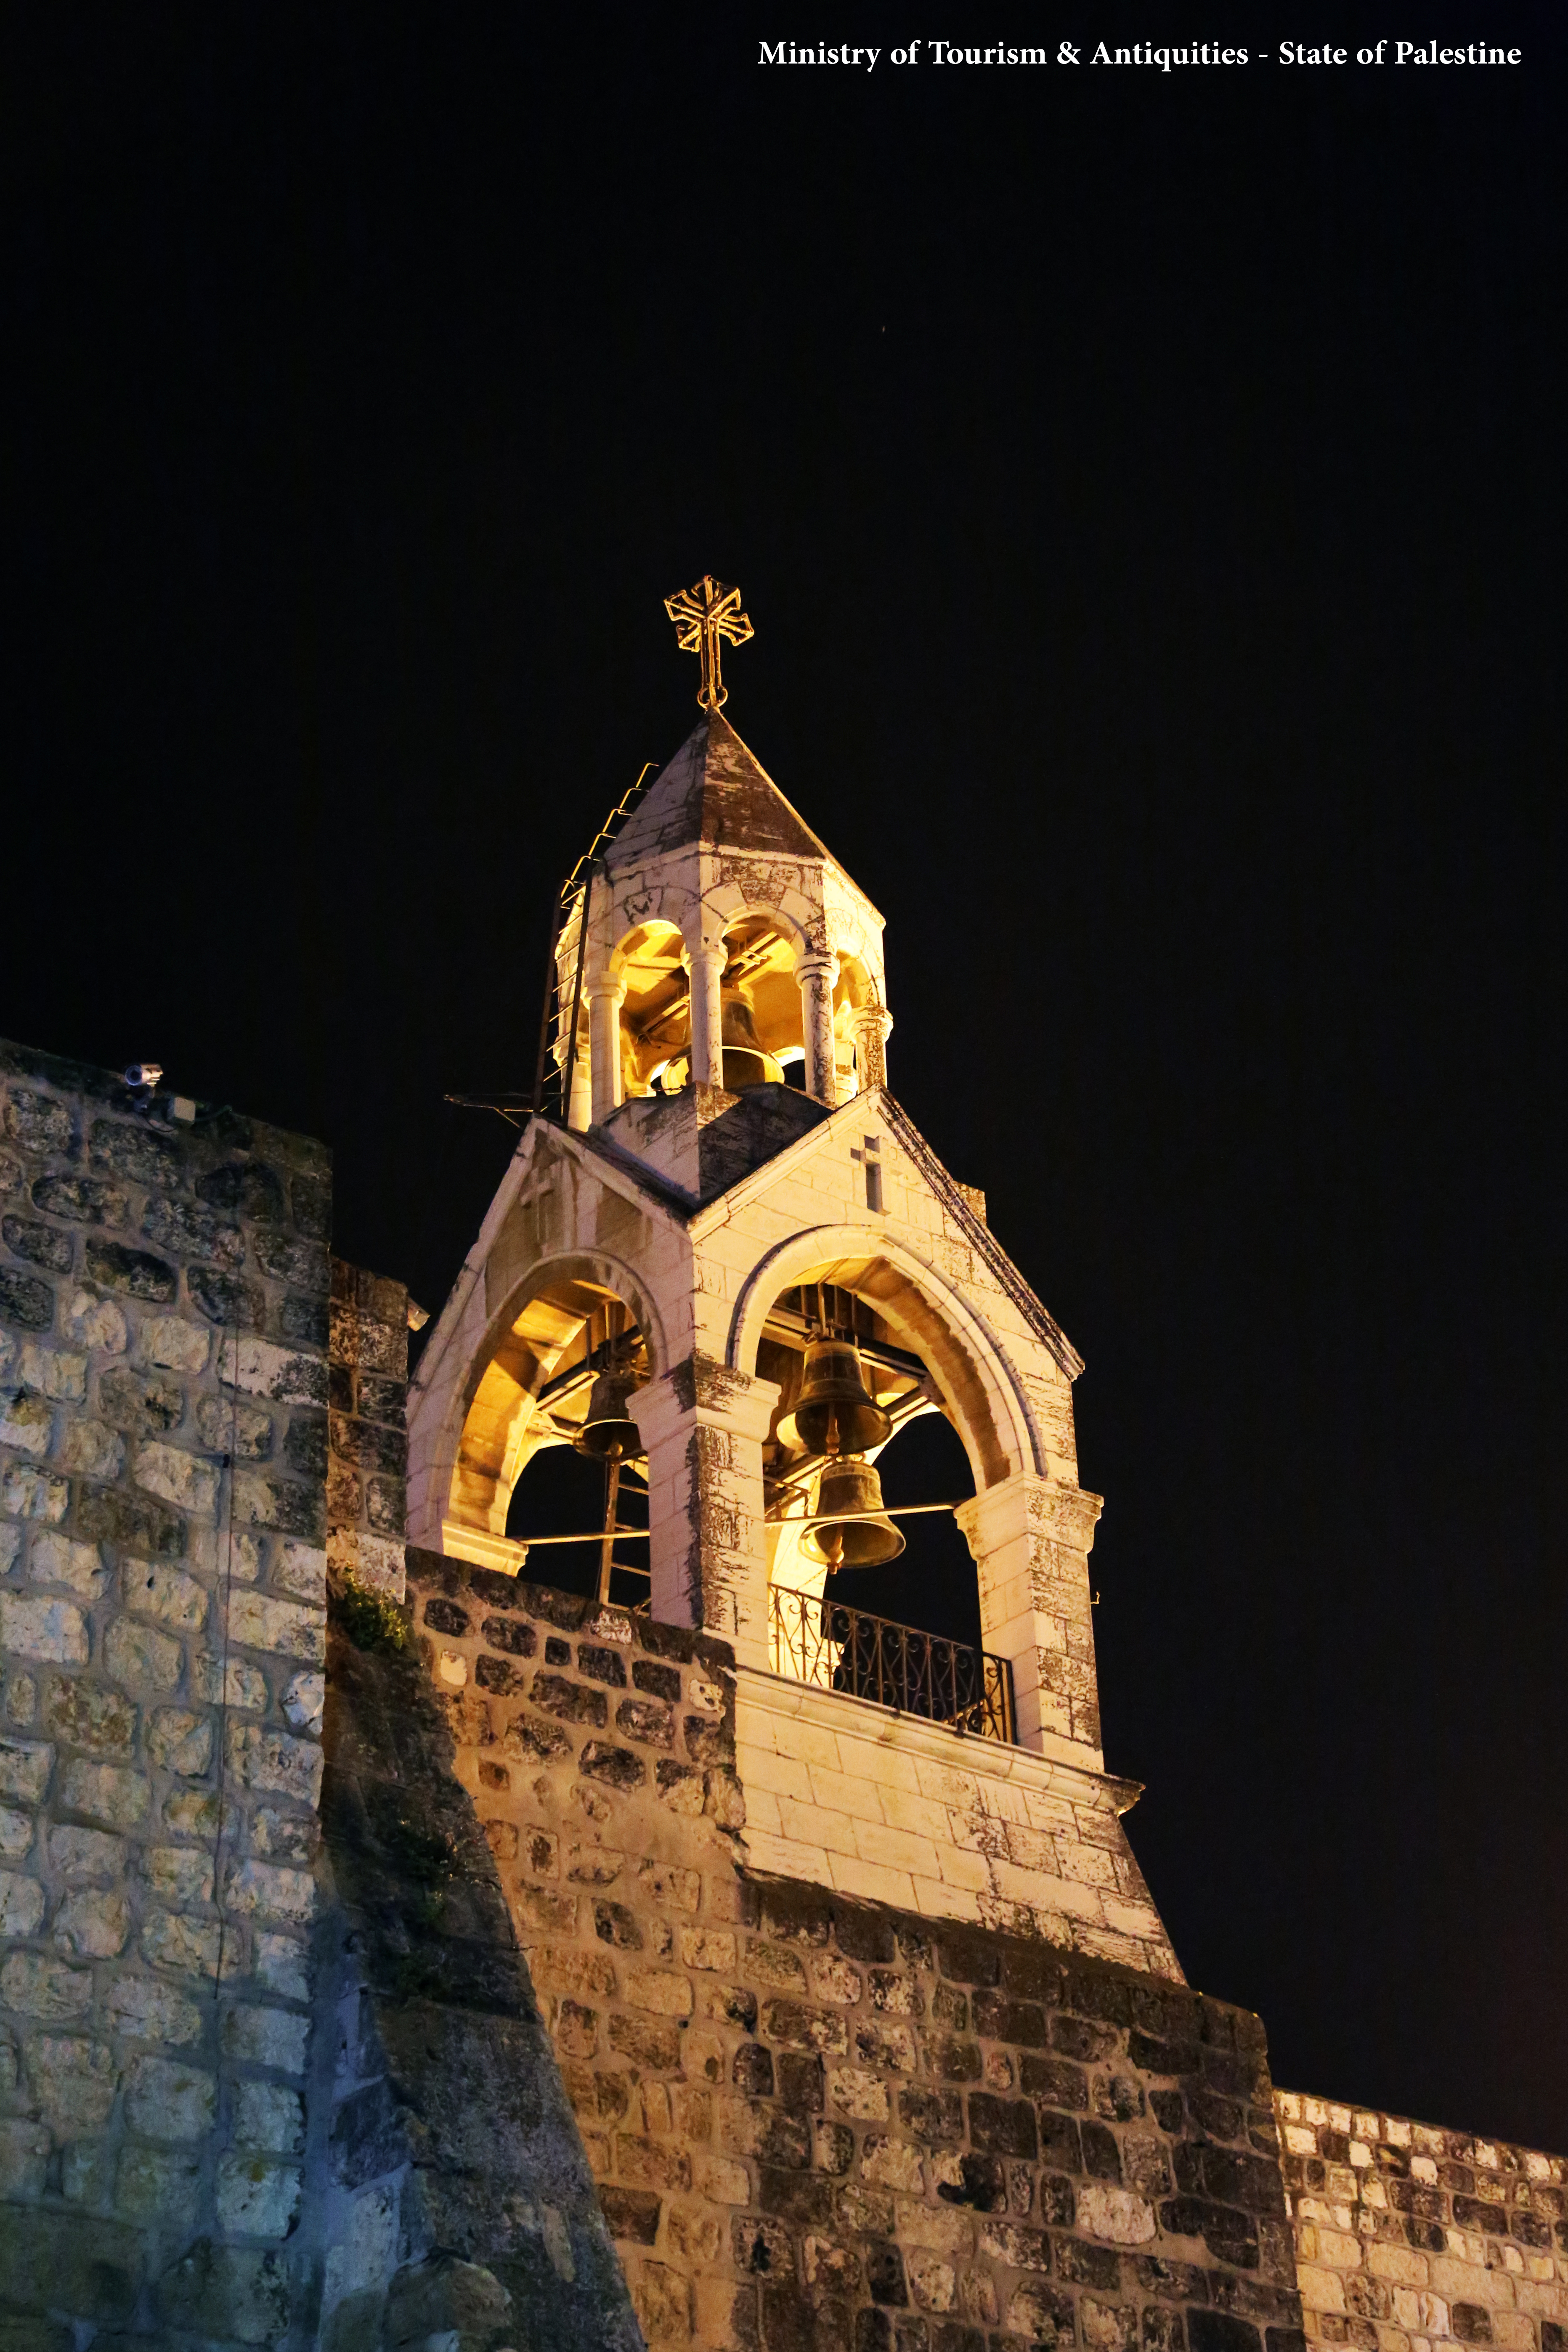 Old Town in Bethlehem